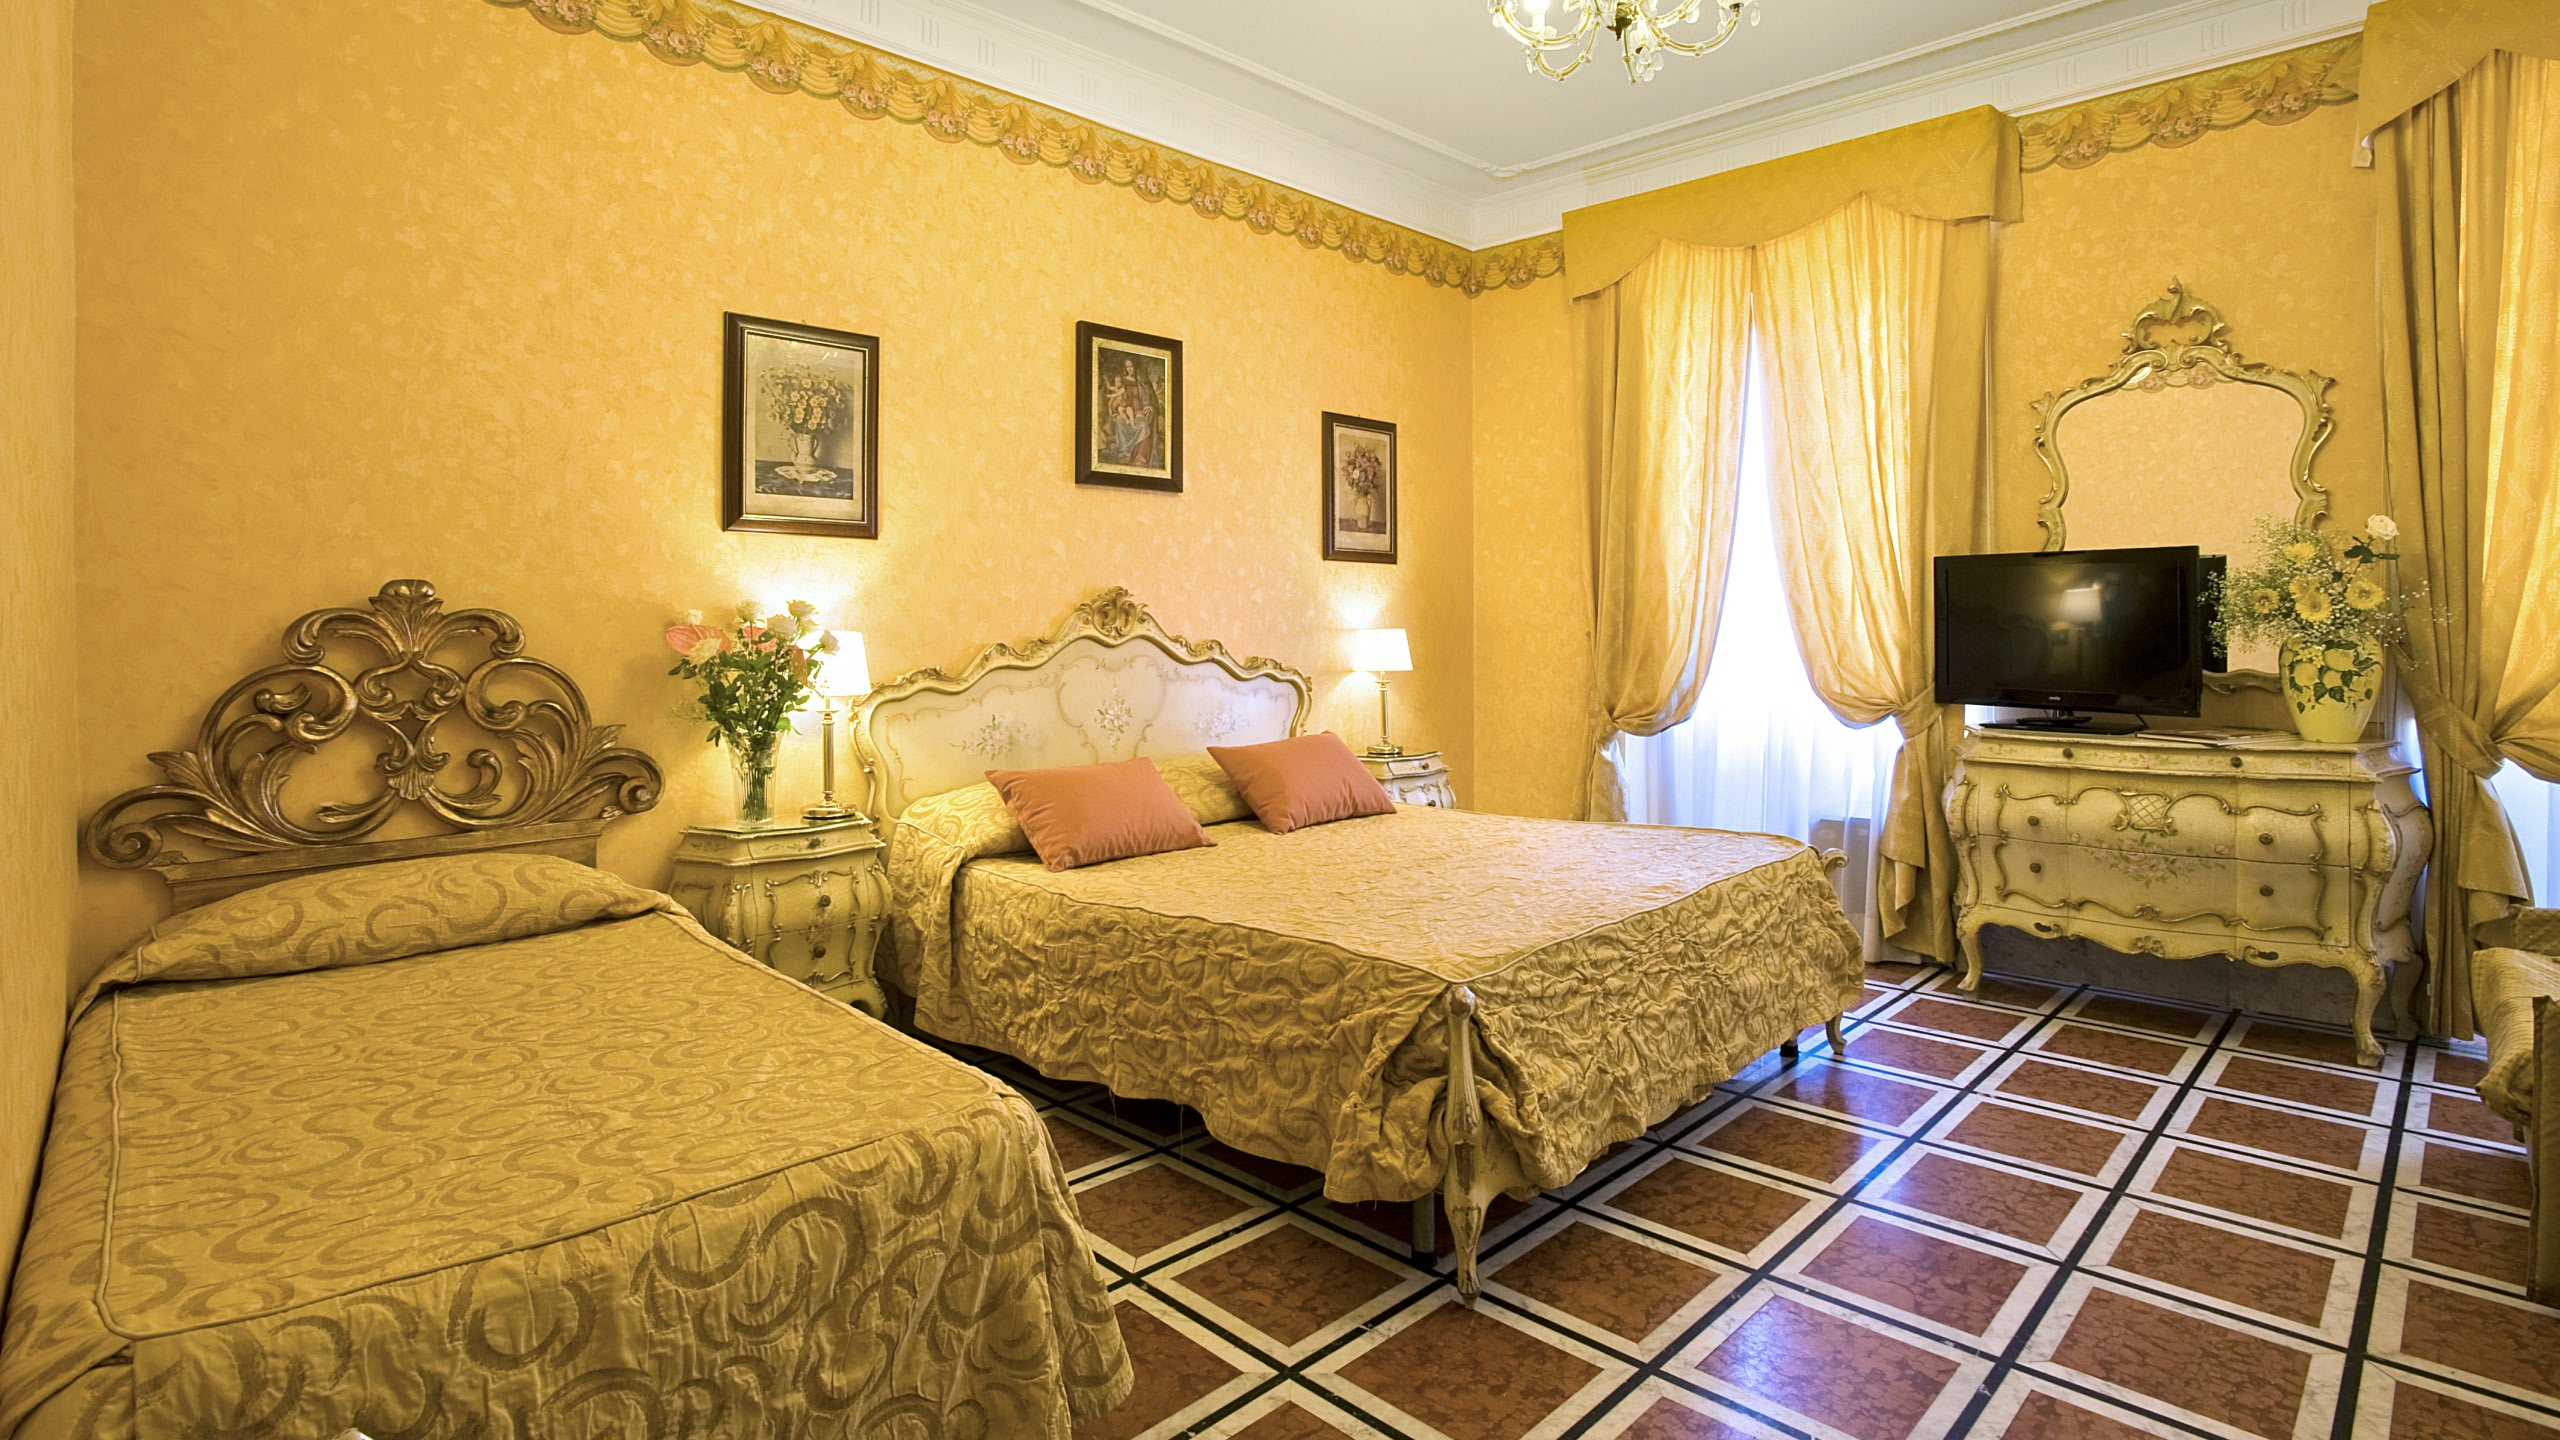 san lorenzo chat rooms San lorenzo rooms in rome on hotelscom and earn rewards nights collect 10 nights get 1 free read 11 genuine guest reviews for san lorenzo rooms.